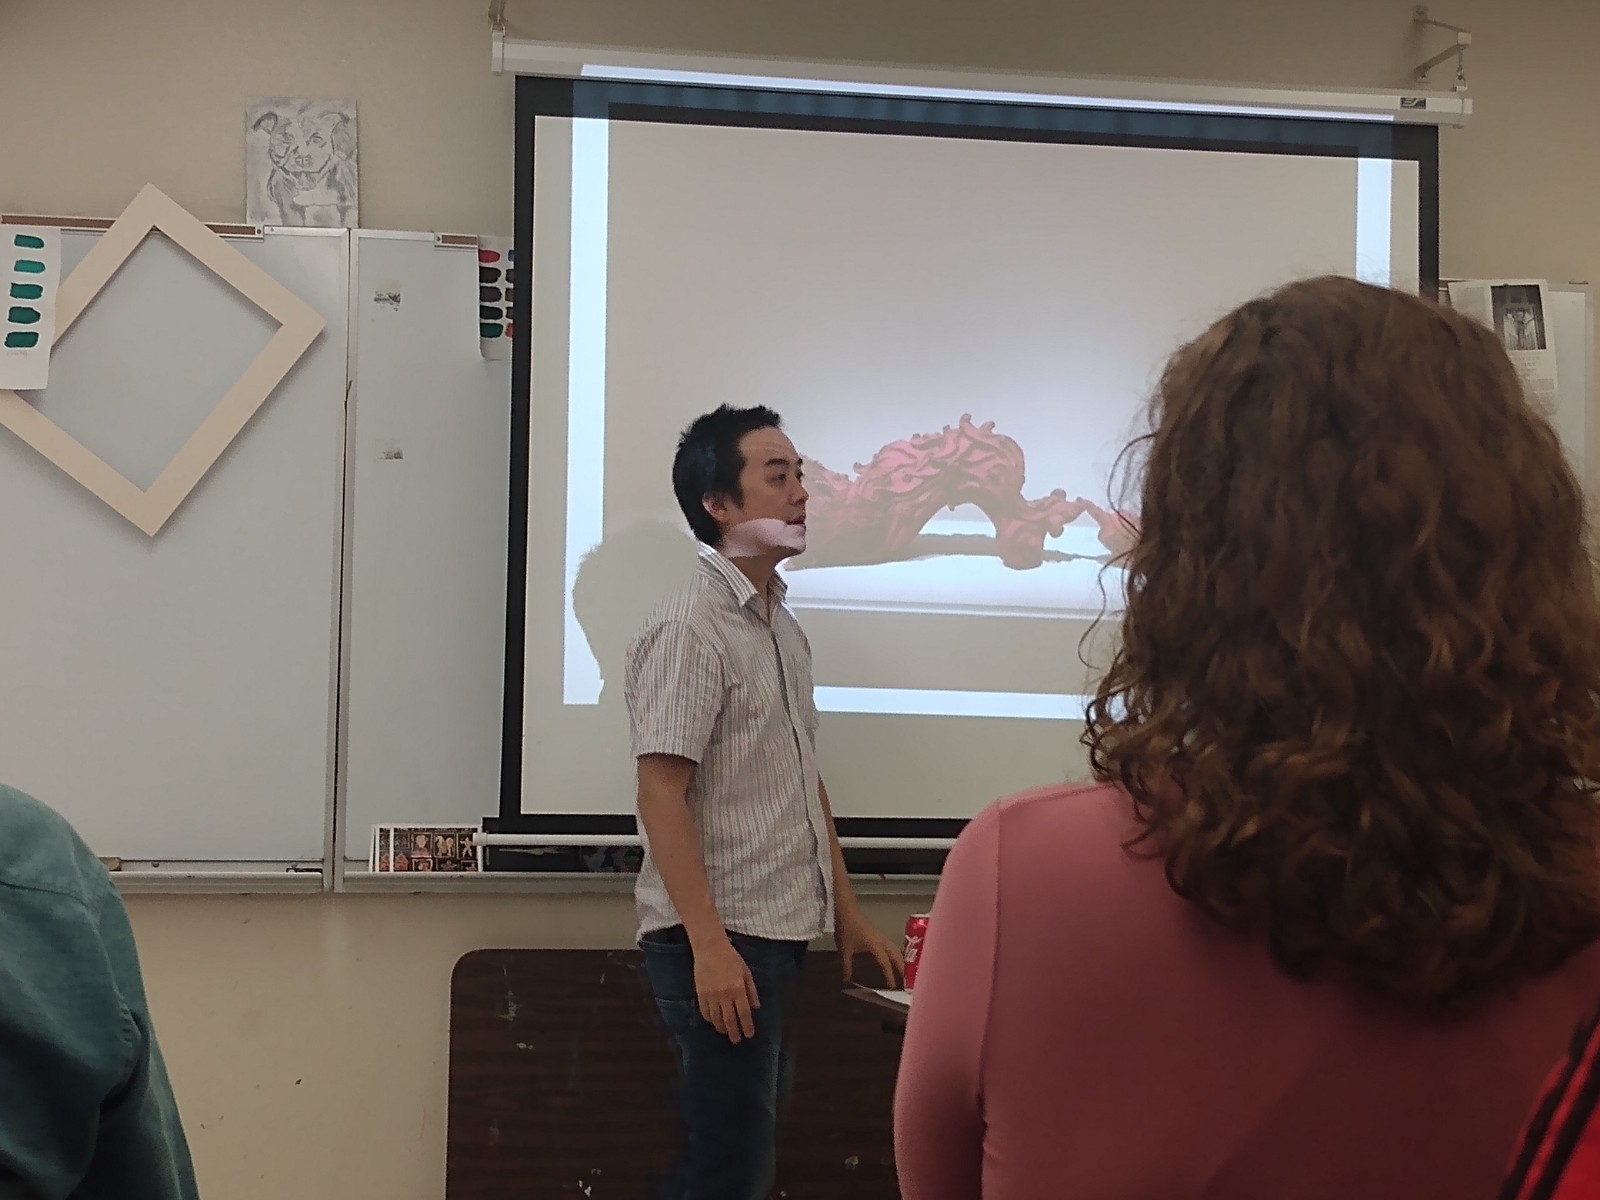 A person is presenting in front of a screen to an audience